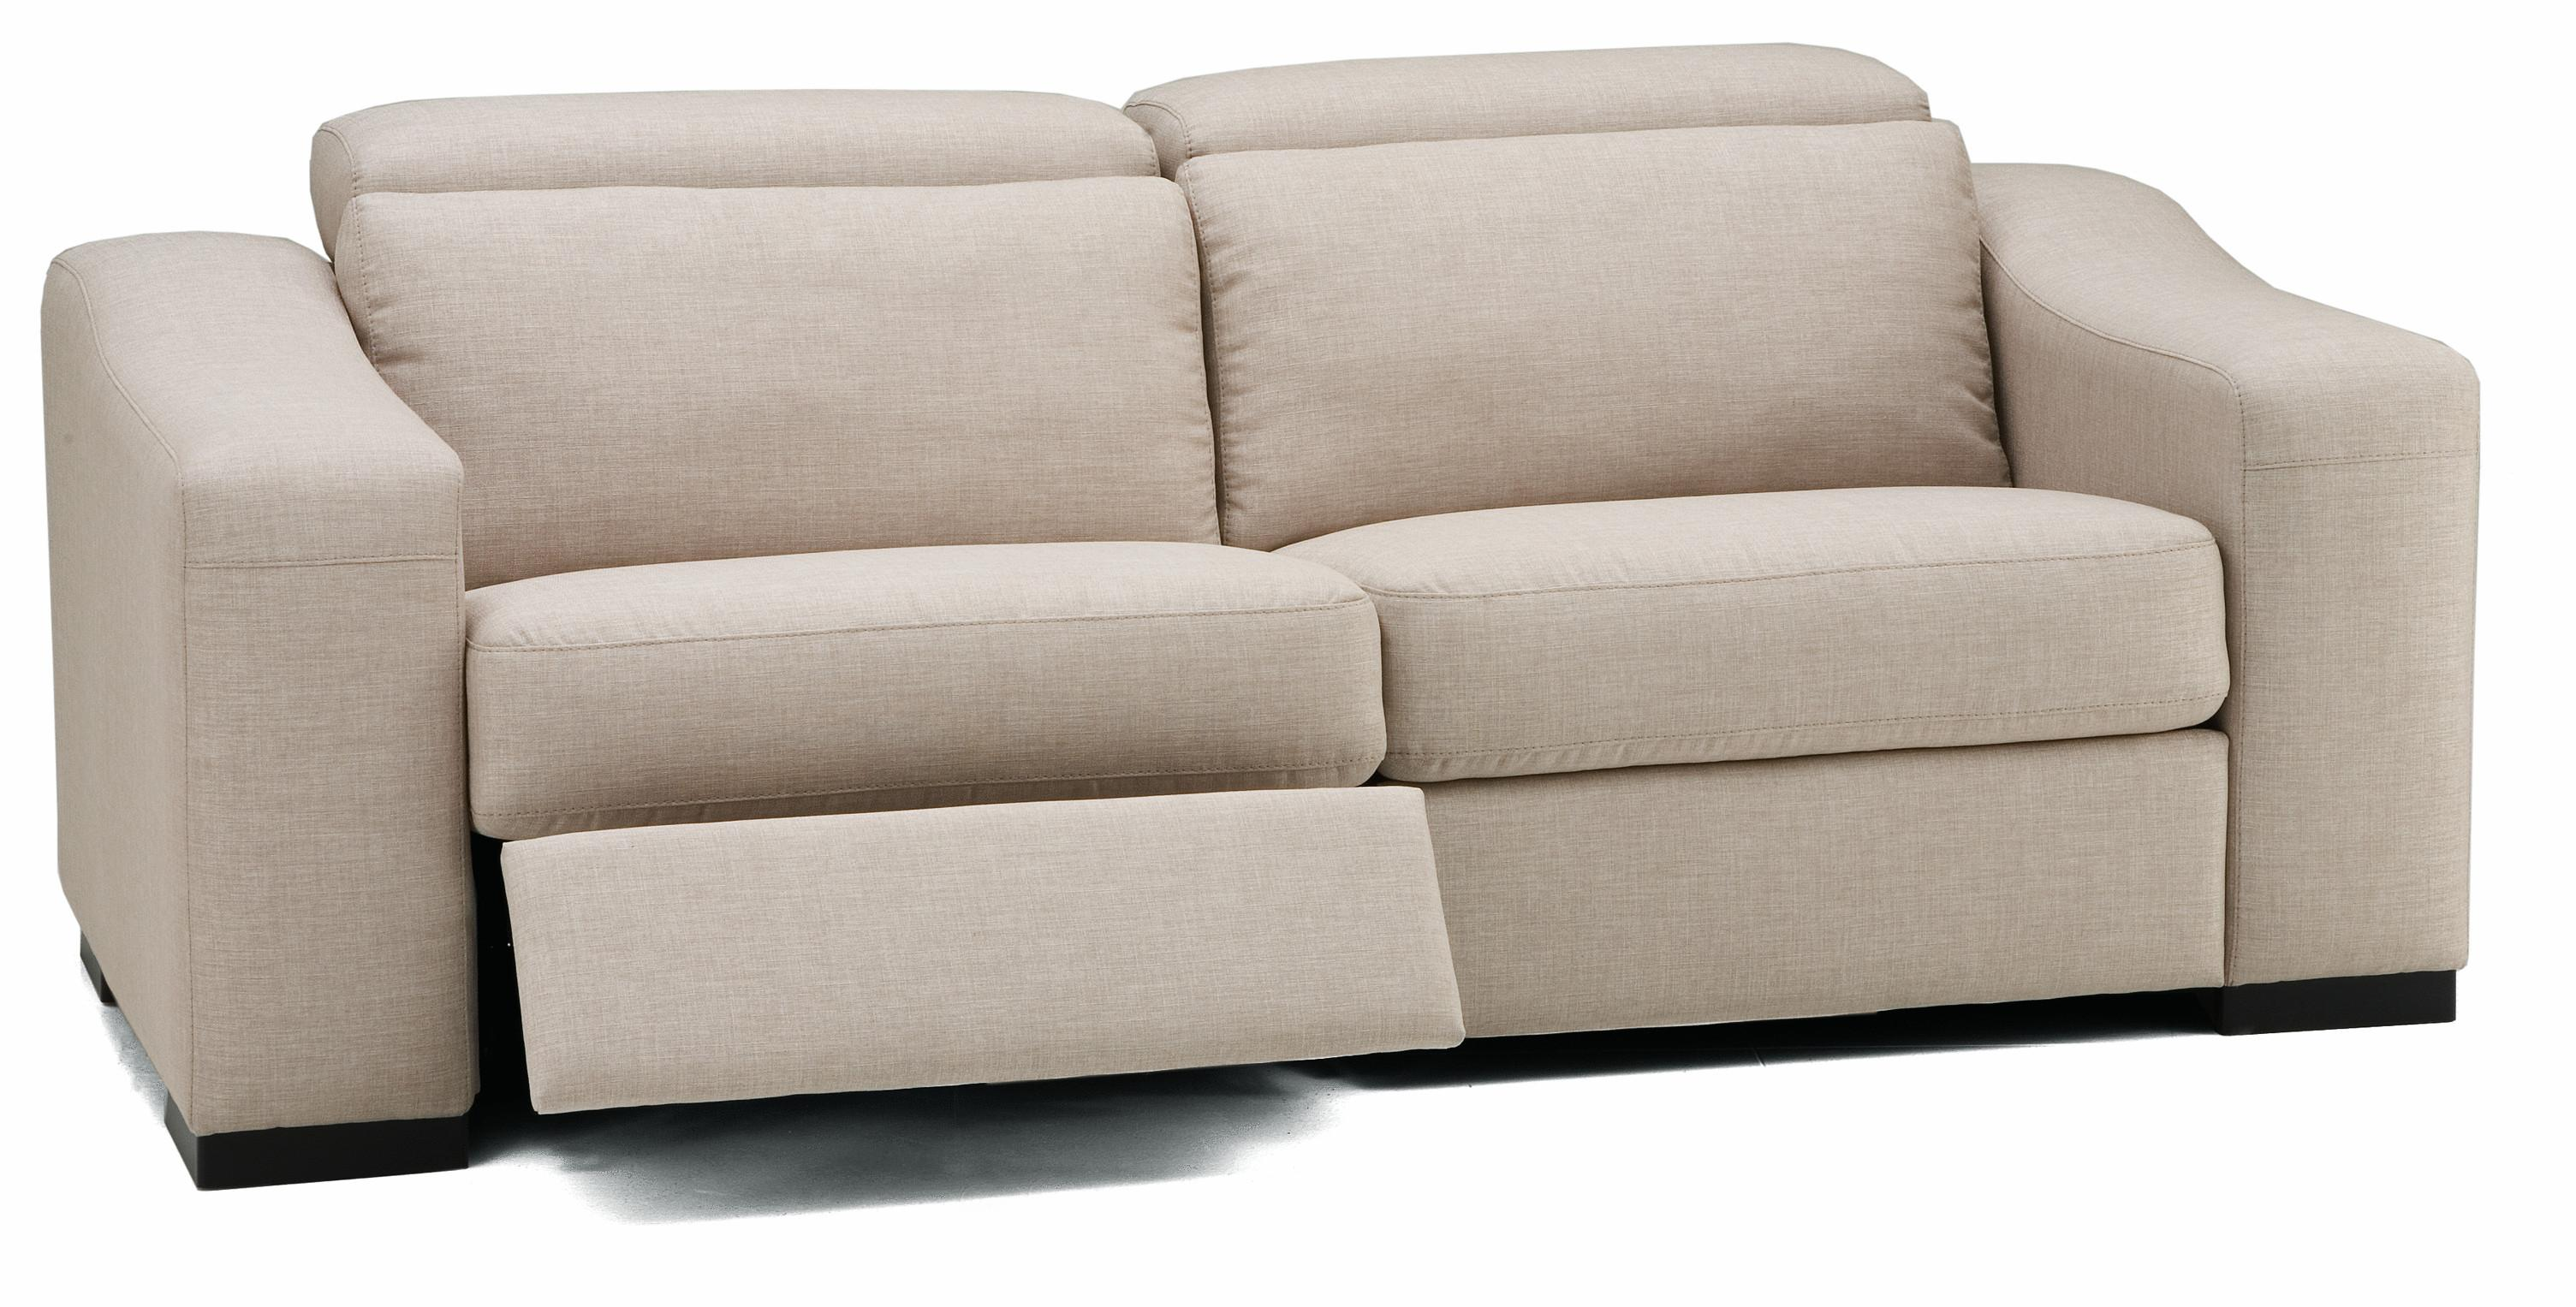 pause modern reclining sectional sofa by palliser italian fabric sofas cortez ii contemporary recliner w power